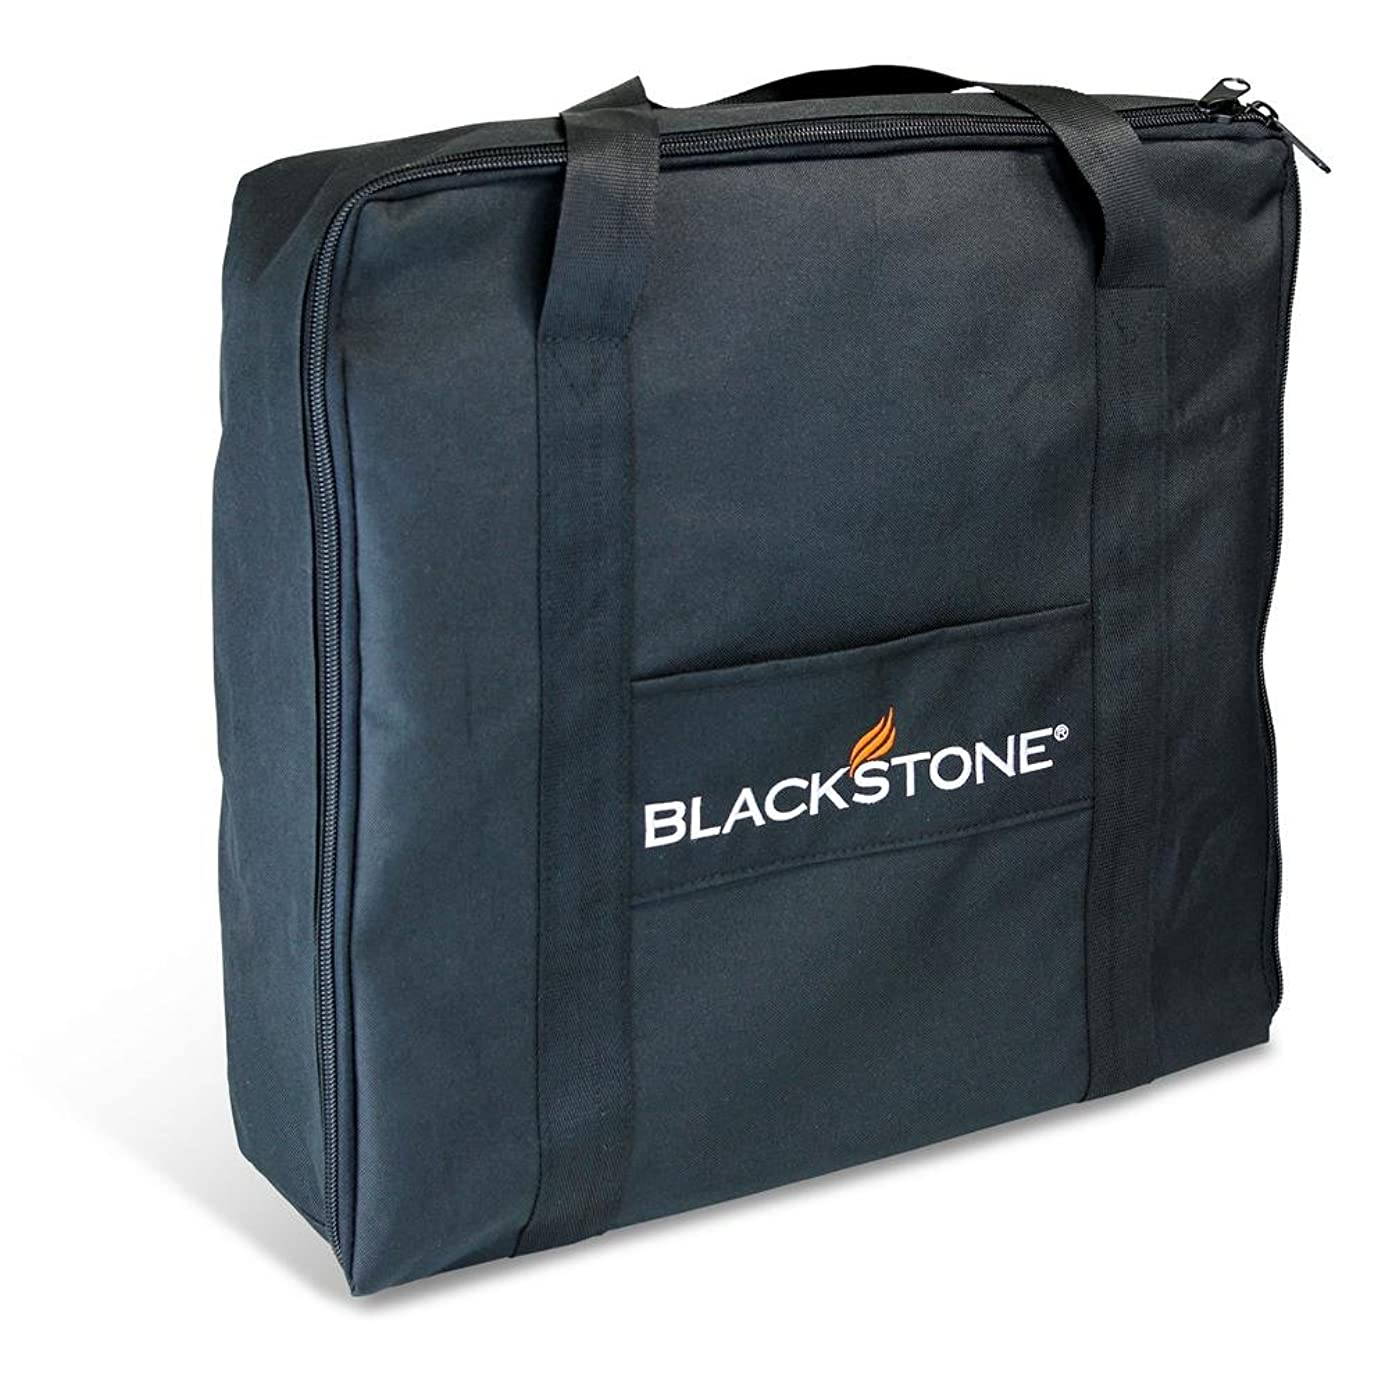 Blackstone Heavy Duty Carry Bag and Cover Set for 17 in. Table Top Griddle (2-piece set)